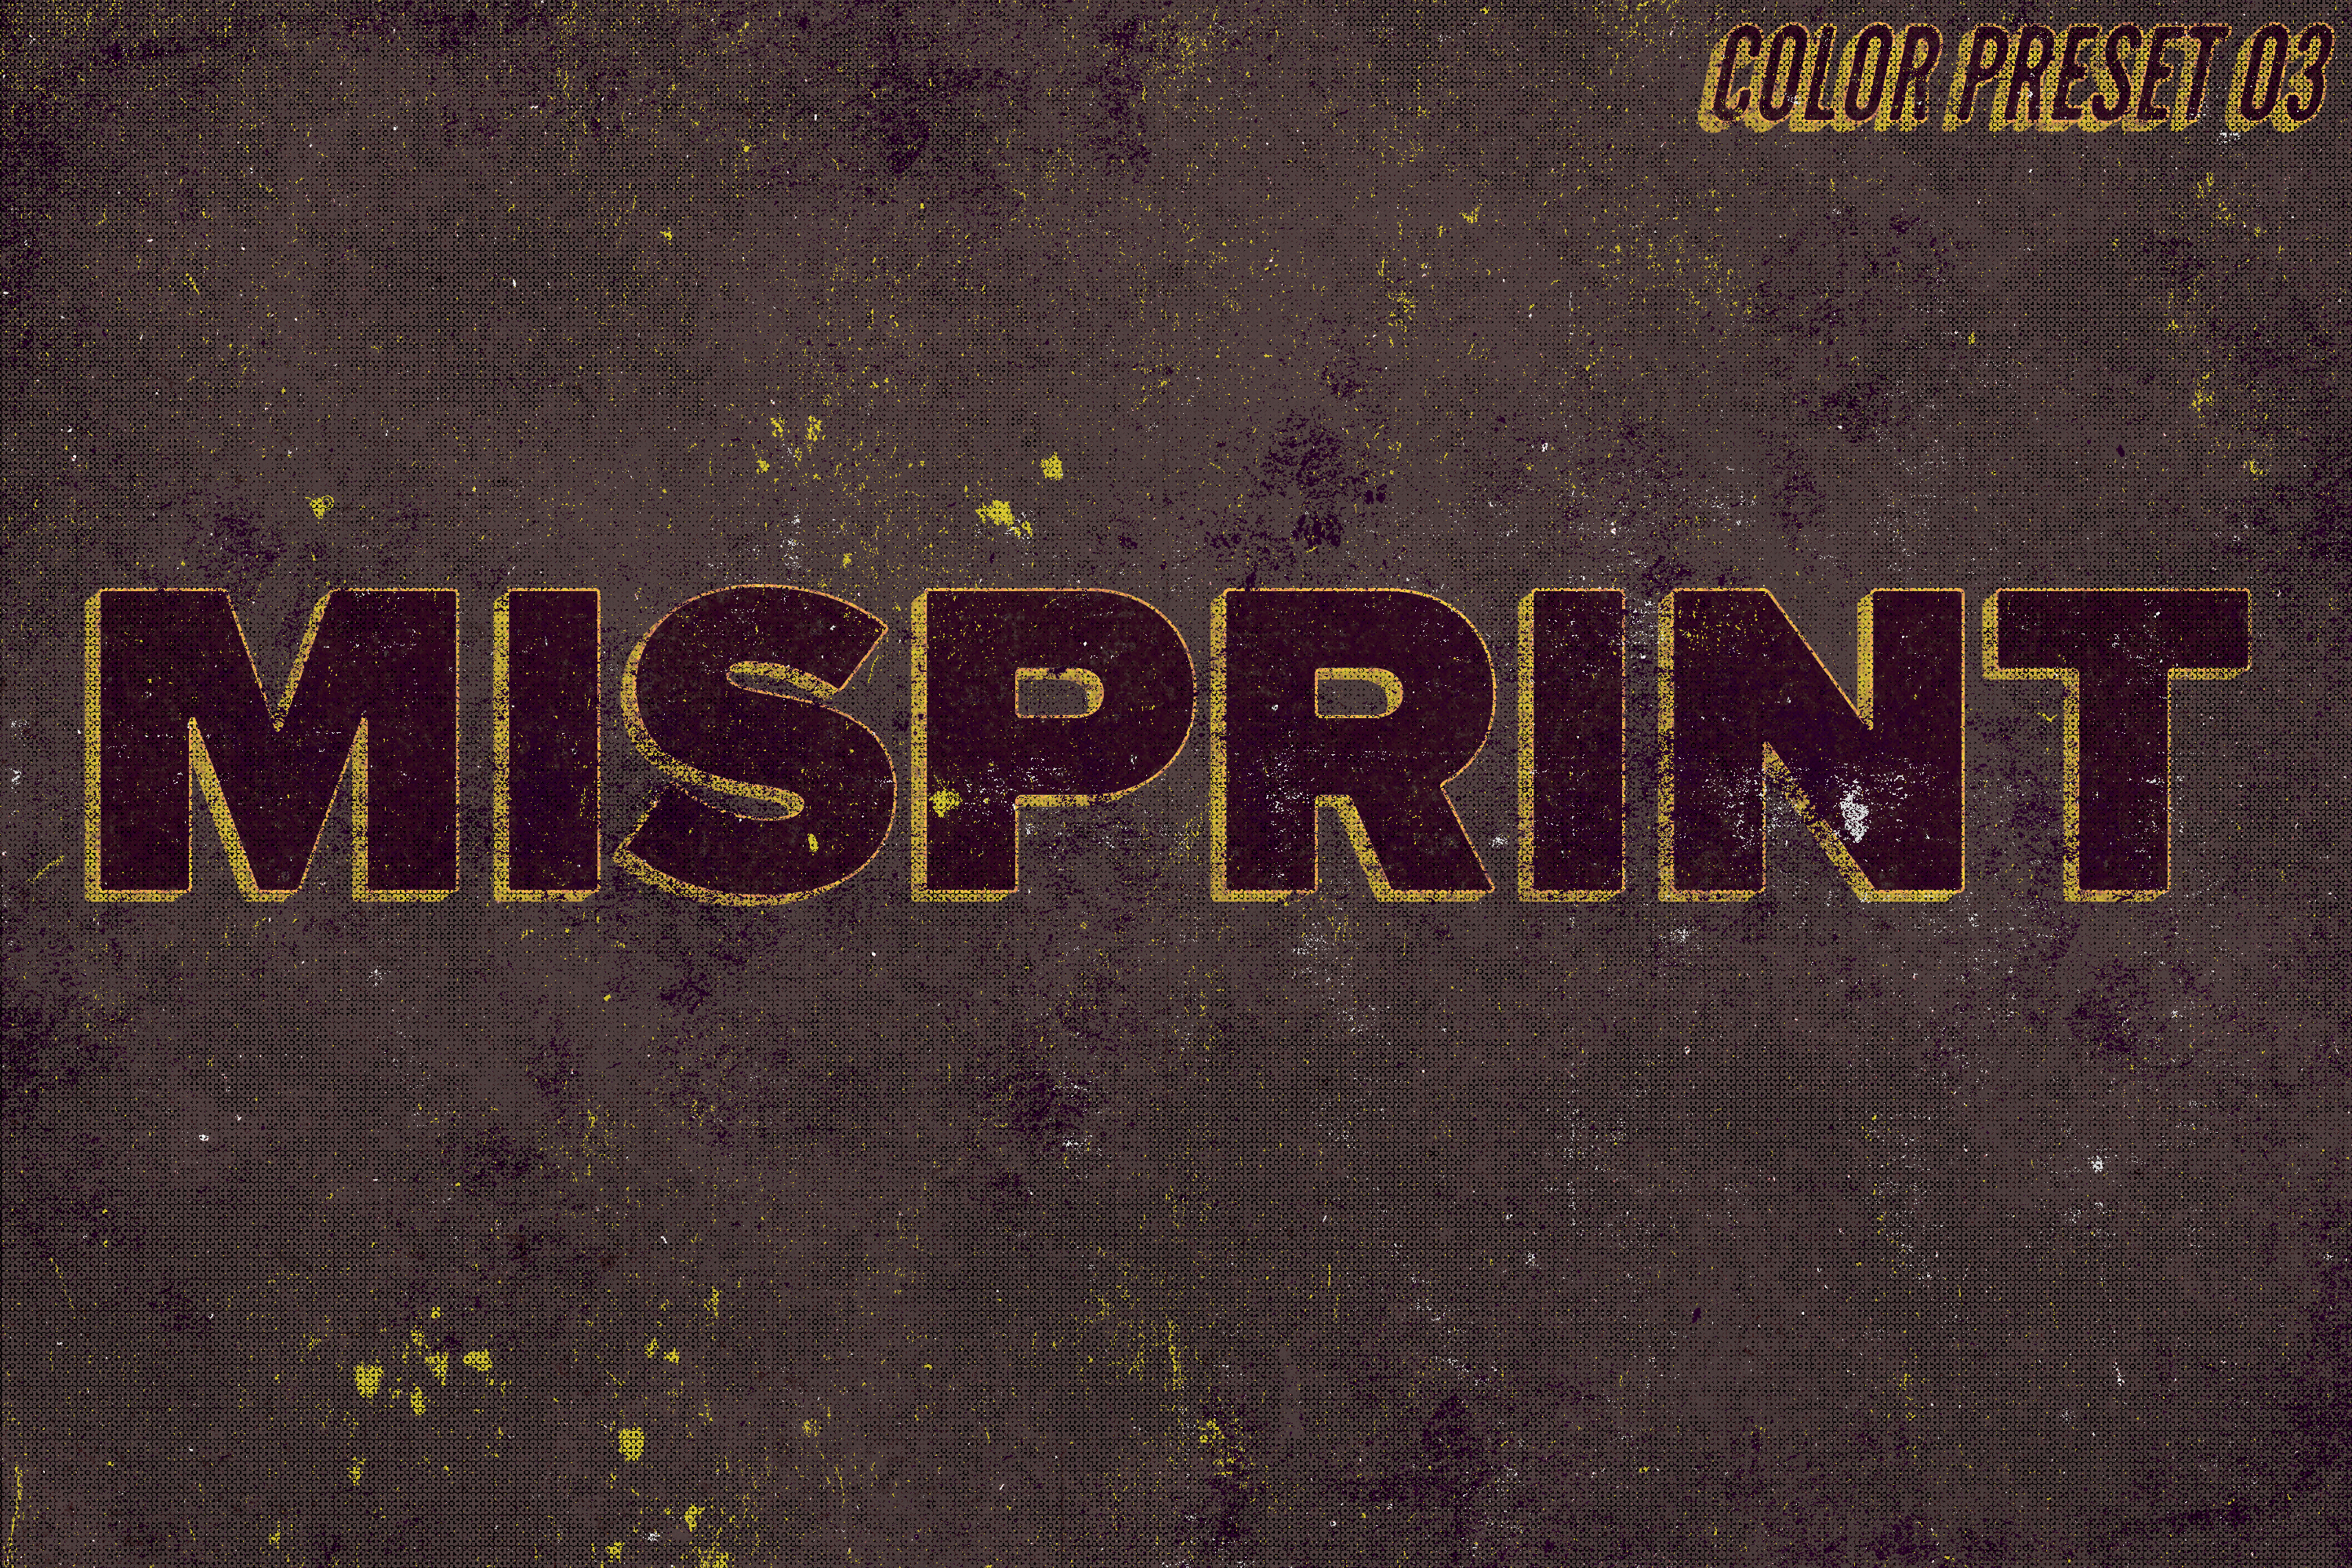 Grunge - Vintage Text Effect example image 5